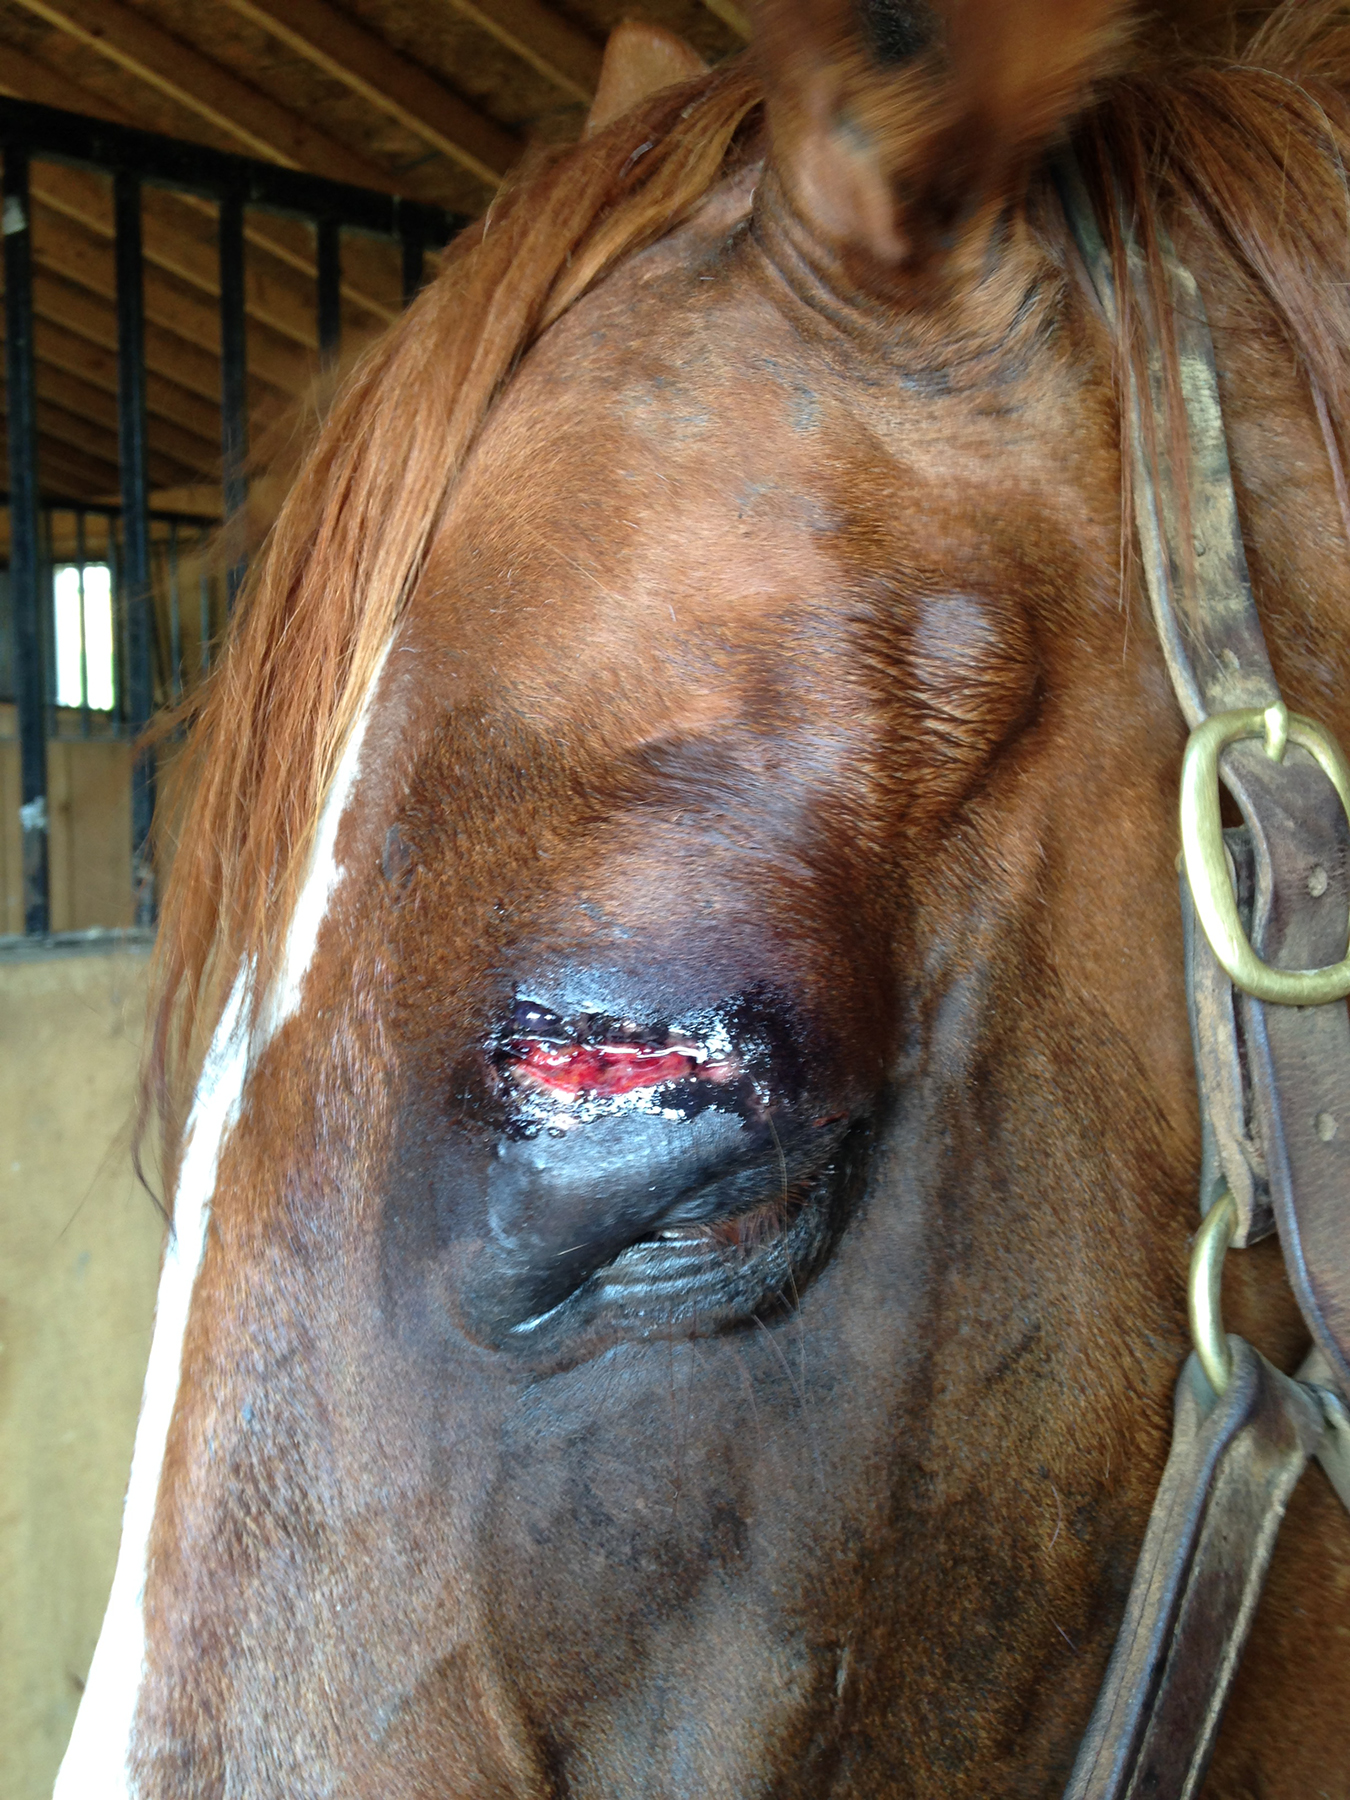 The next day after having his eye cleaned and ointment applied.